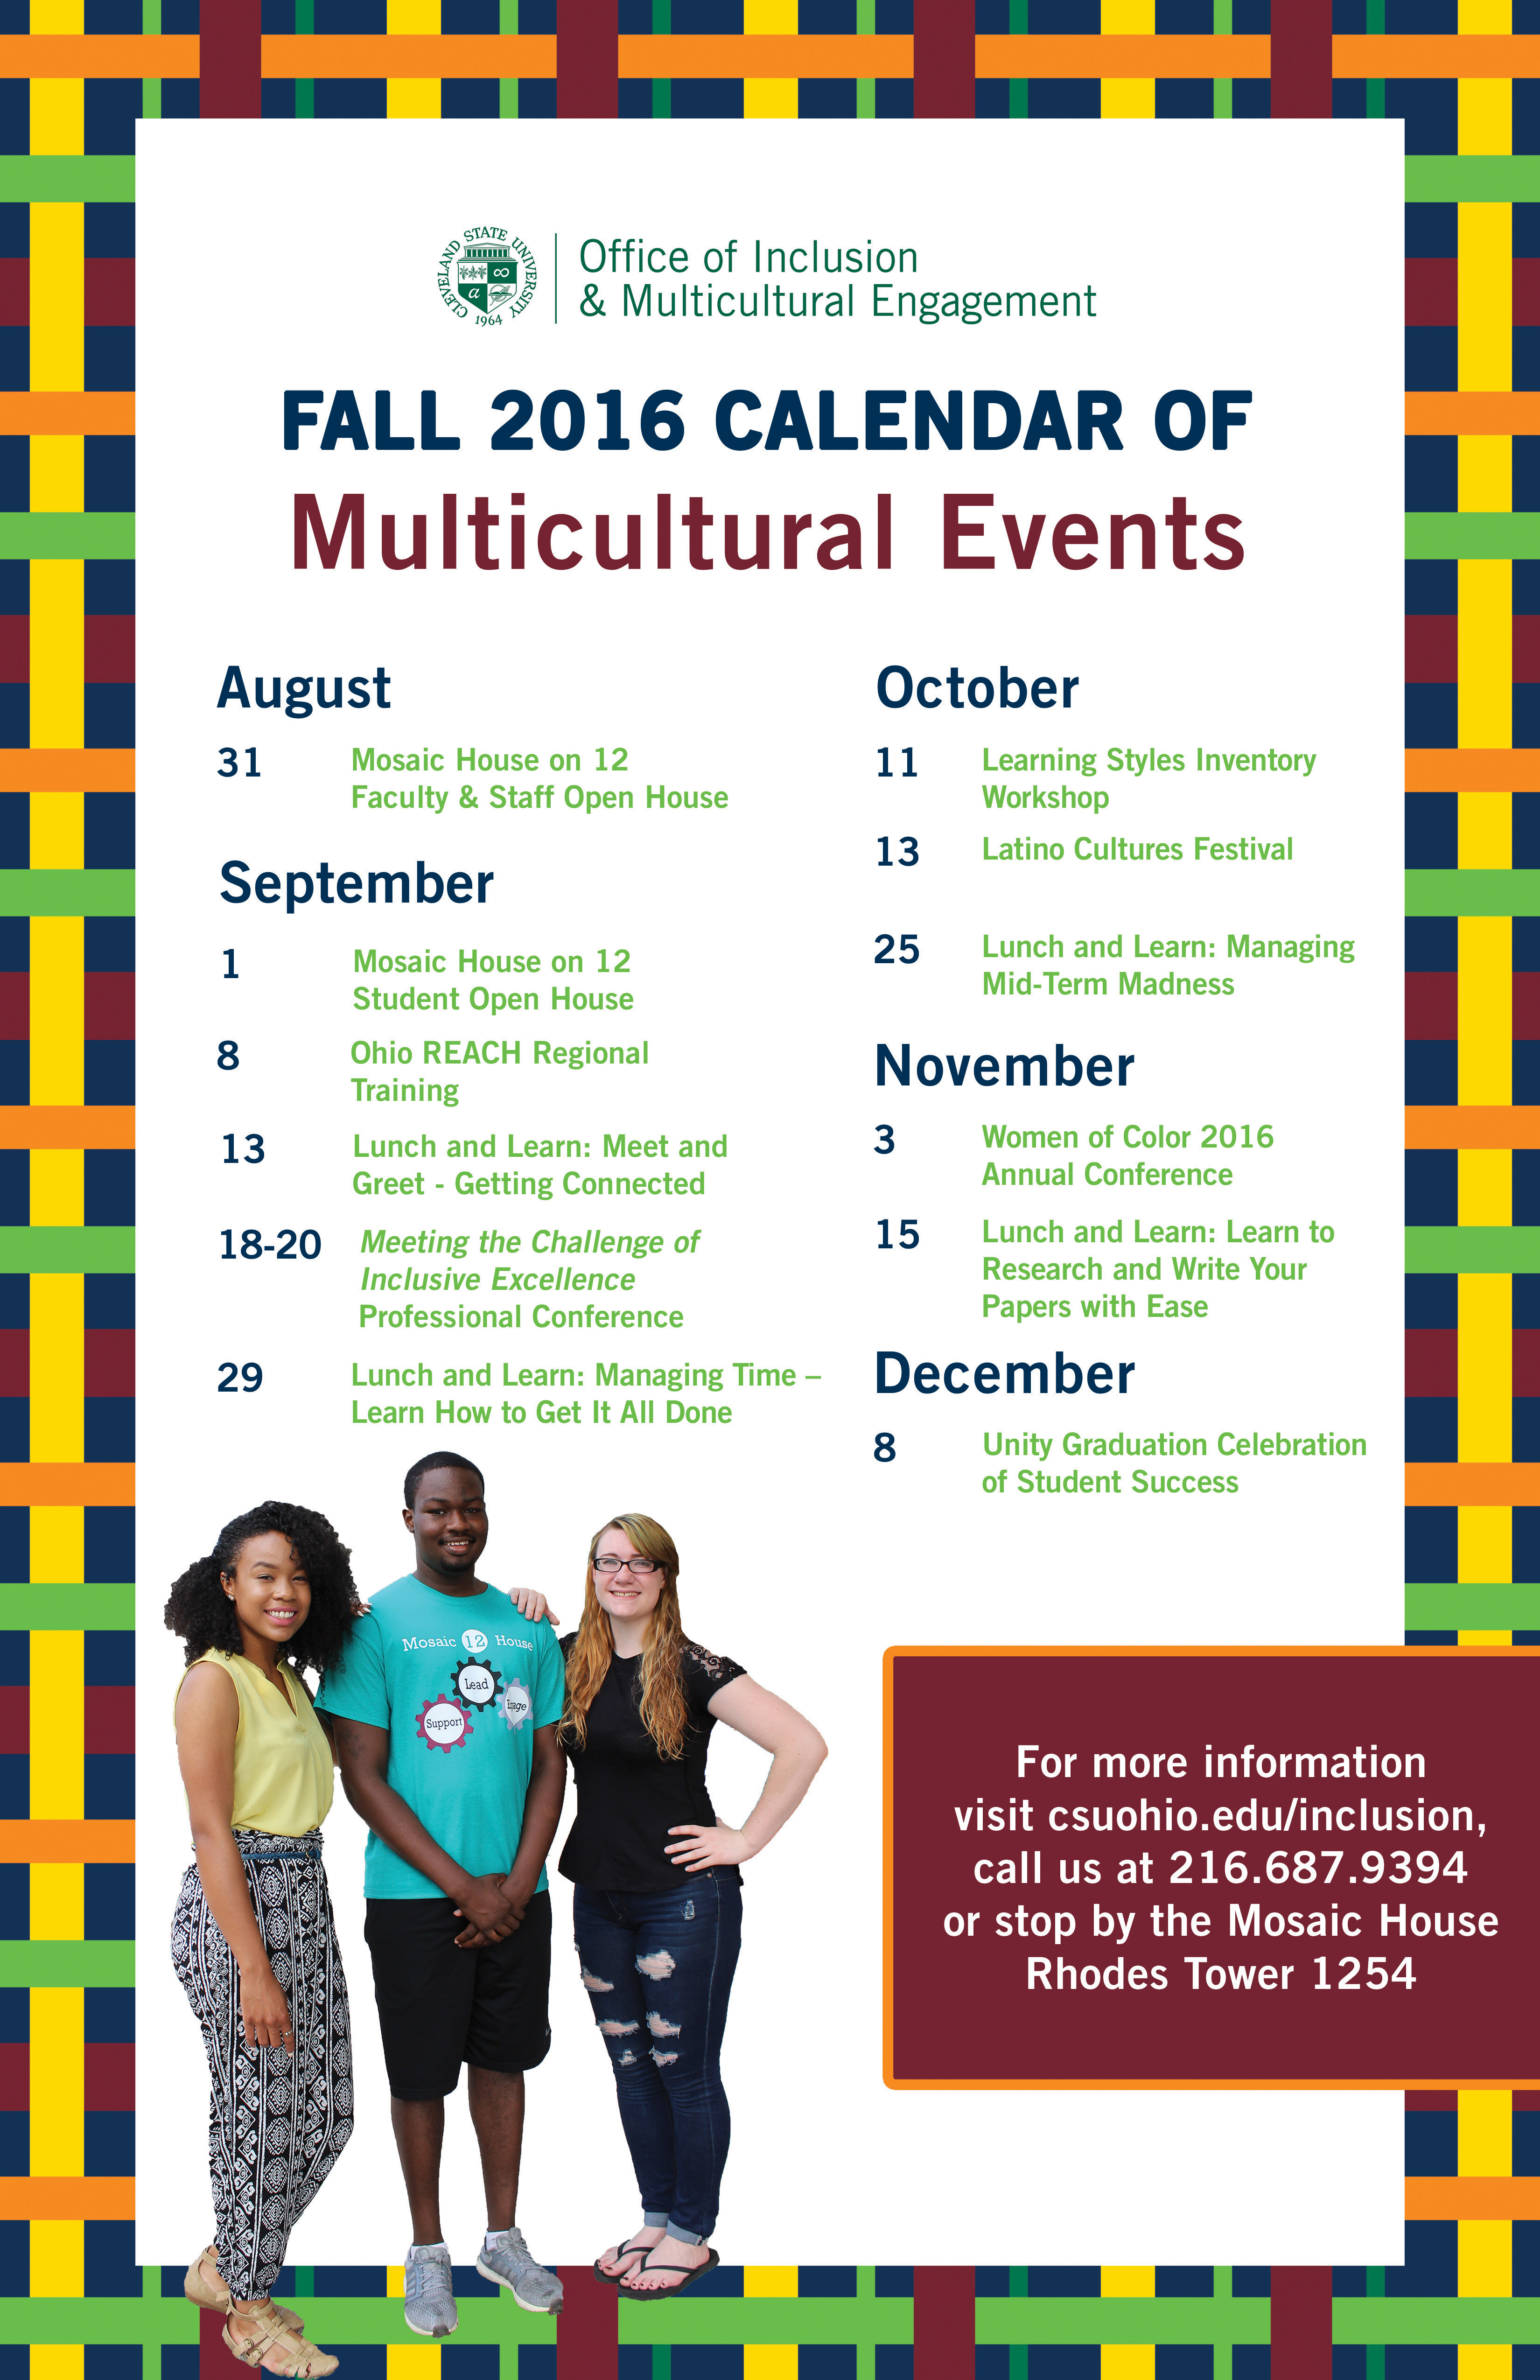 Fall 2016 Calendar - Office of Inclusion and Multicultural Engagement at Cleveland State University